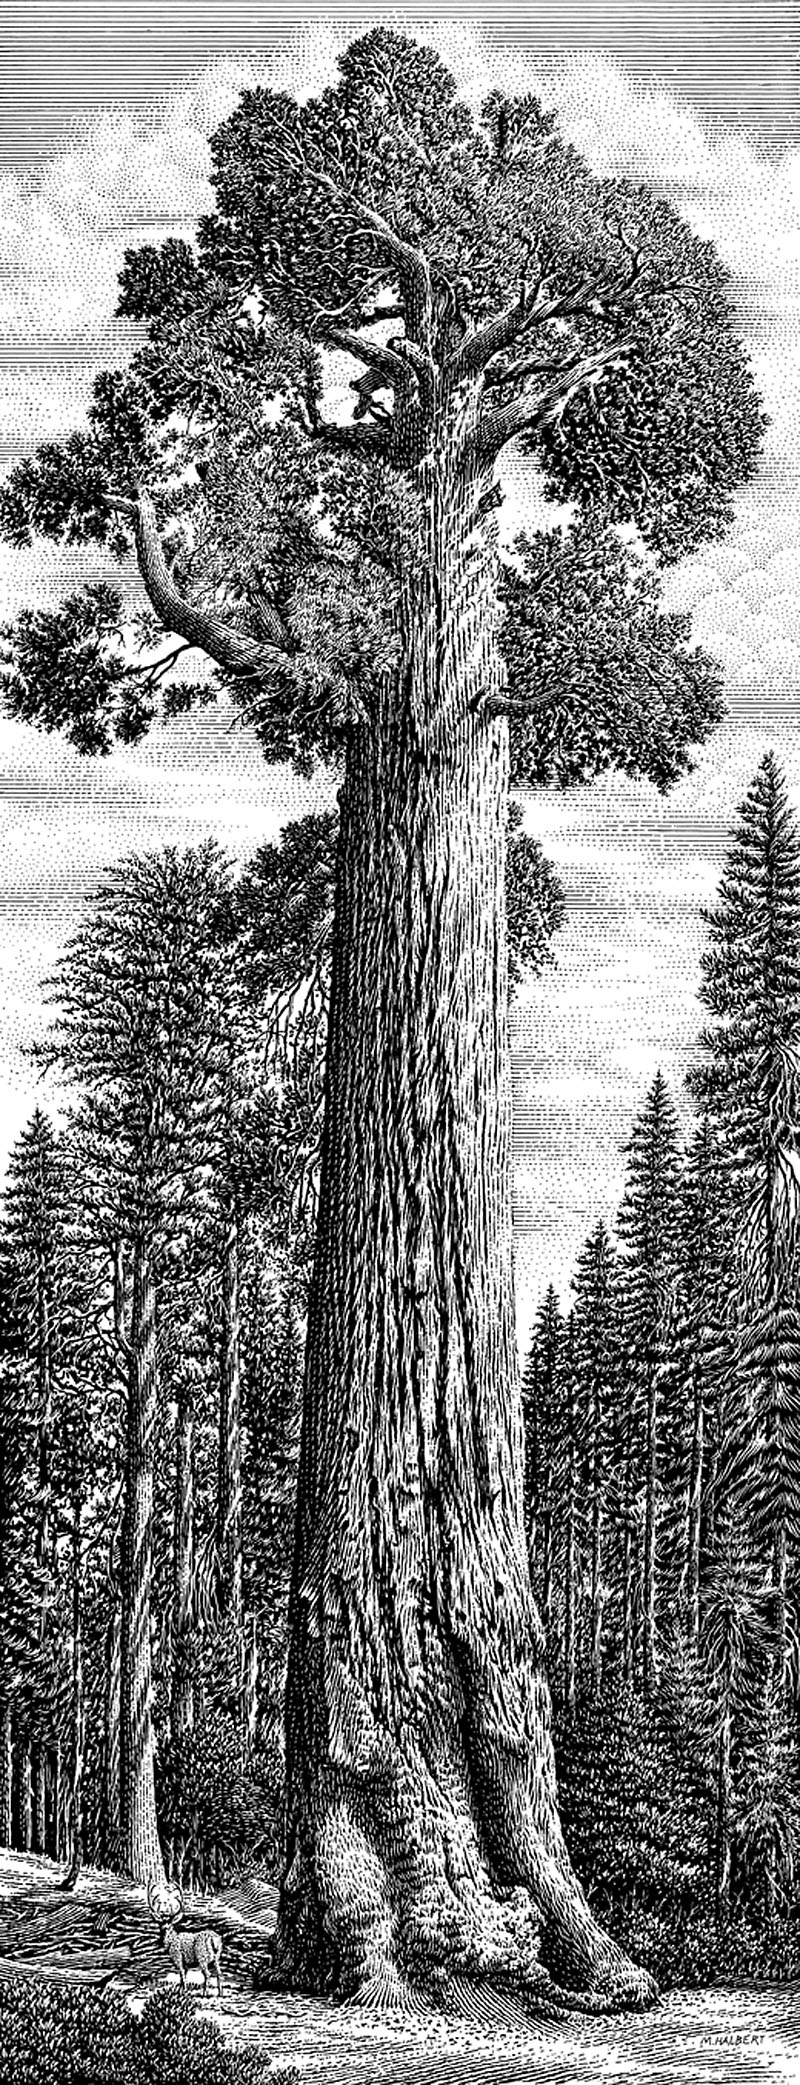 General Grant Giant Sequoia Tree